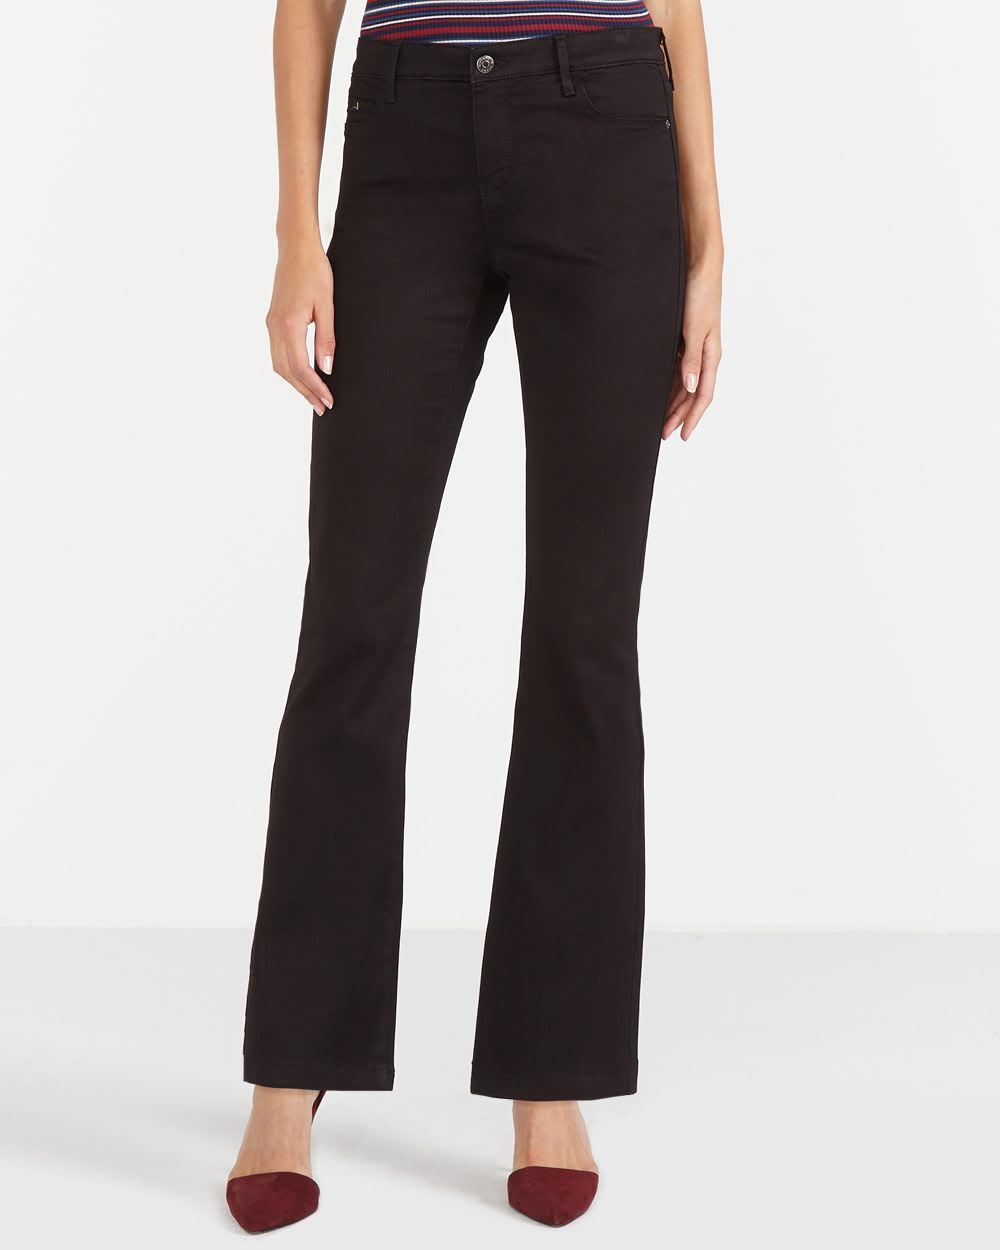 The Petite Signature Soft Boot Cut Jeans